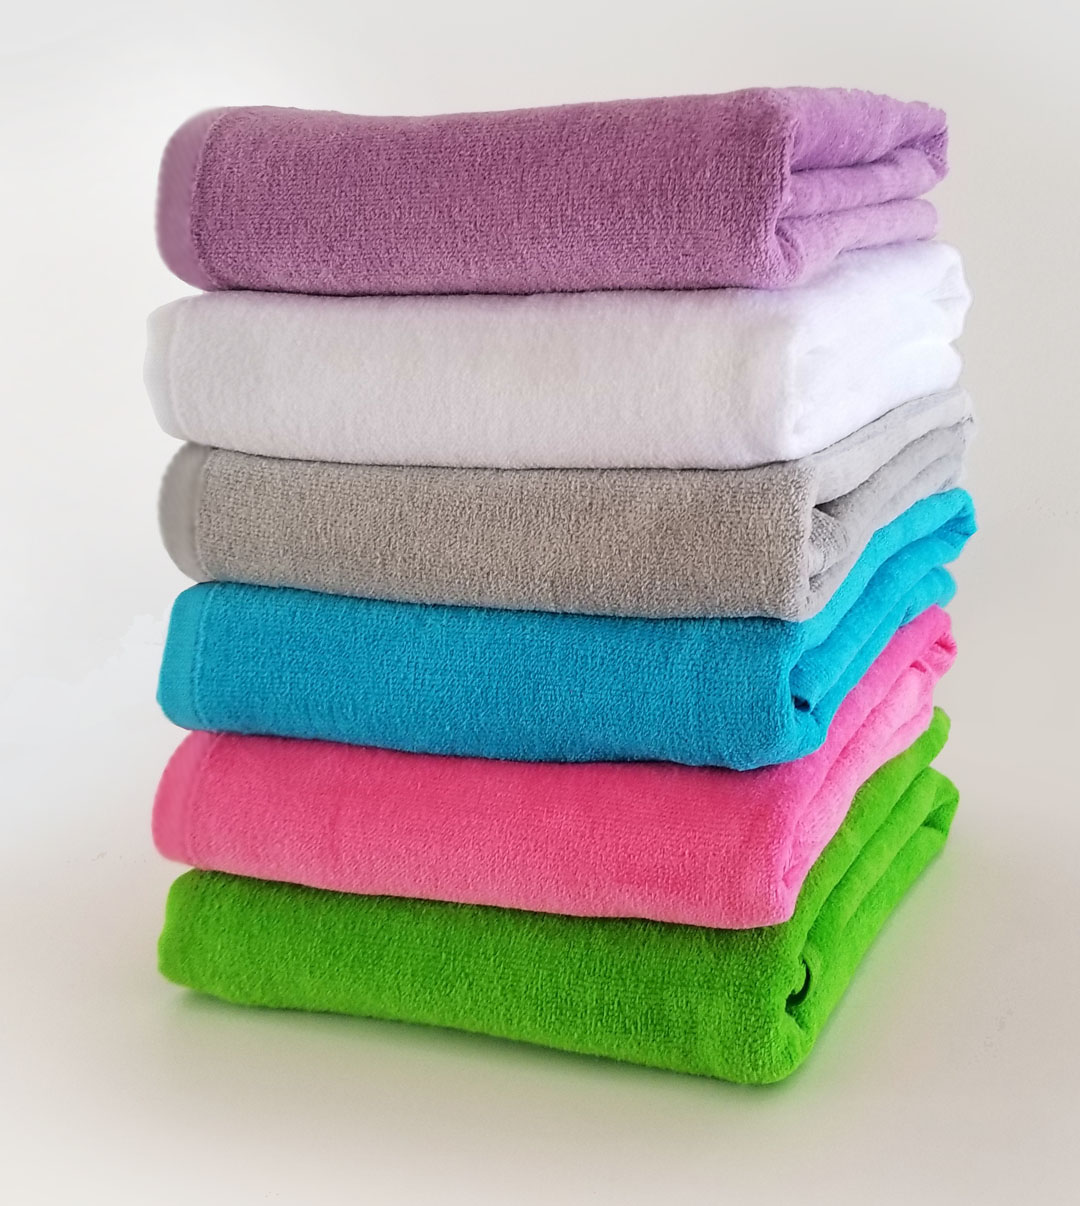 28x58 Super Economy Light Weight 9 Lbs/ Dz Terry Beach Towels. (Assorted Colors)